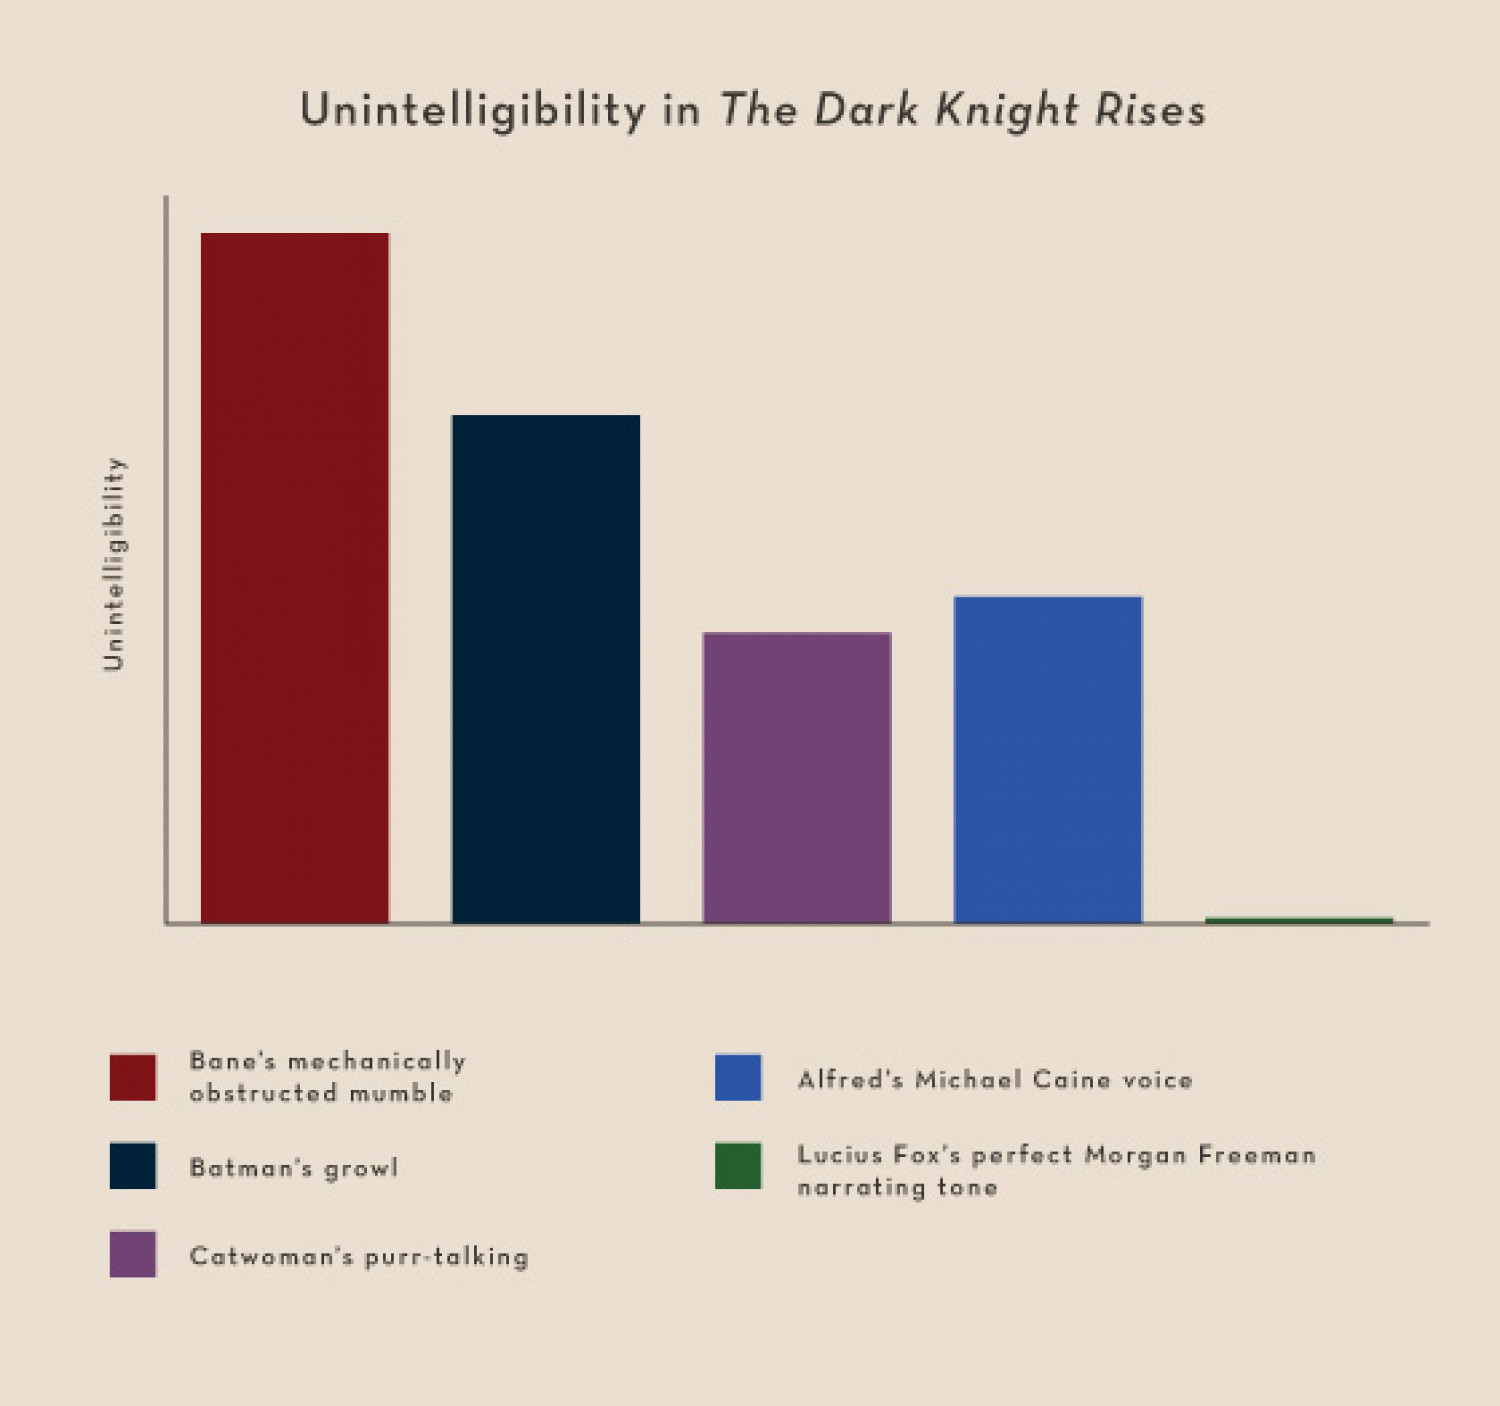 Unintelligibility The Dark Knight Rises Infographic